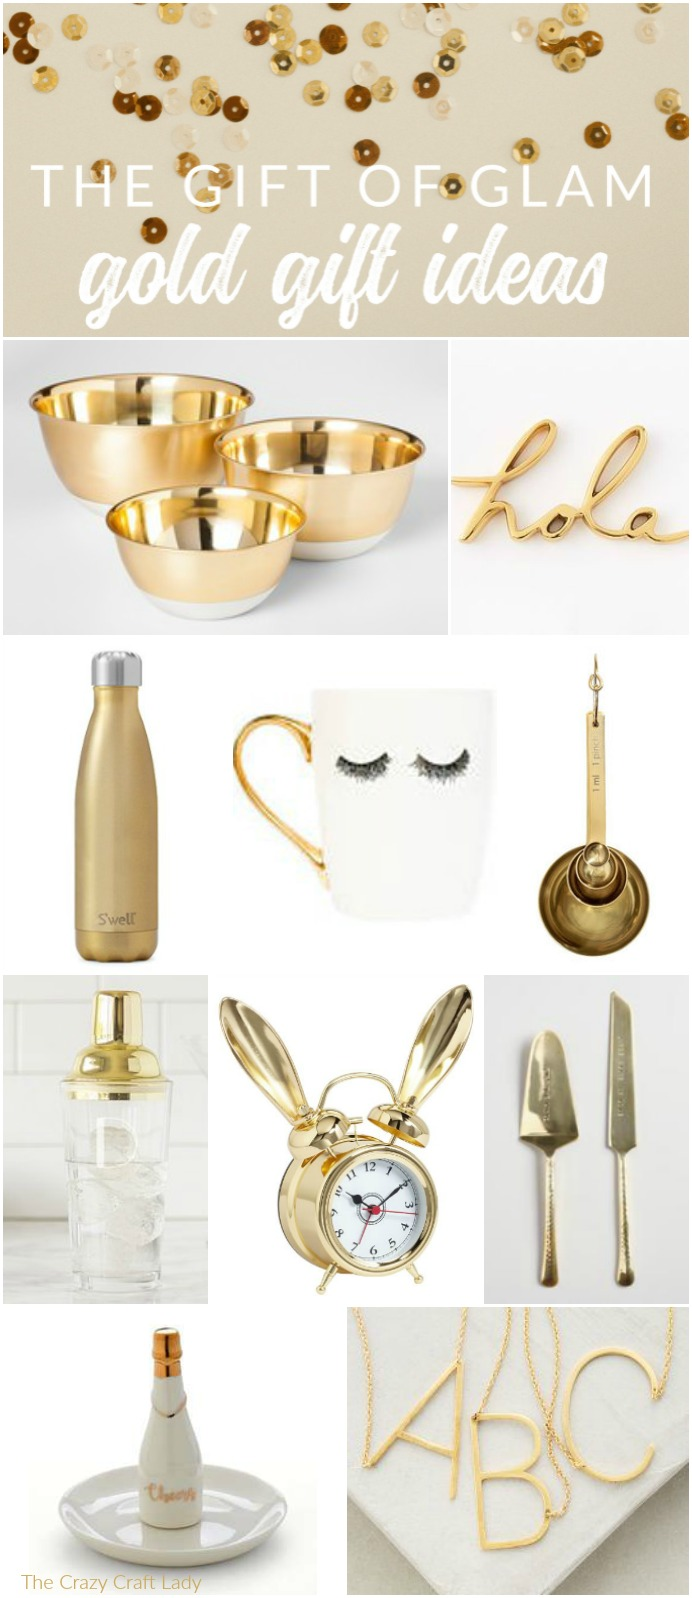 This holiday season, why not give the gift of glitz and glam? There are so many pretty gold present ideas out there, I rounded up my very favorite. Whether it's headphones, desk accessories, or kitchenware, you're sure to find the perfect gold gifts for your mom, sister, BFF, or even a fun hostess gift.